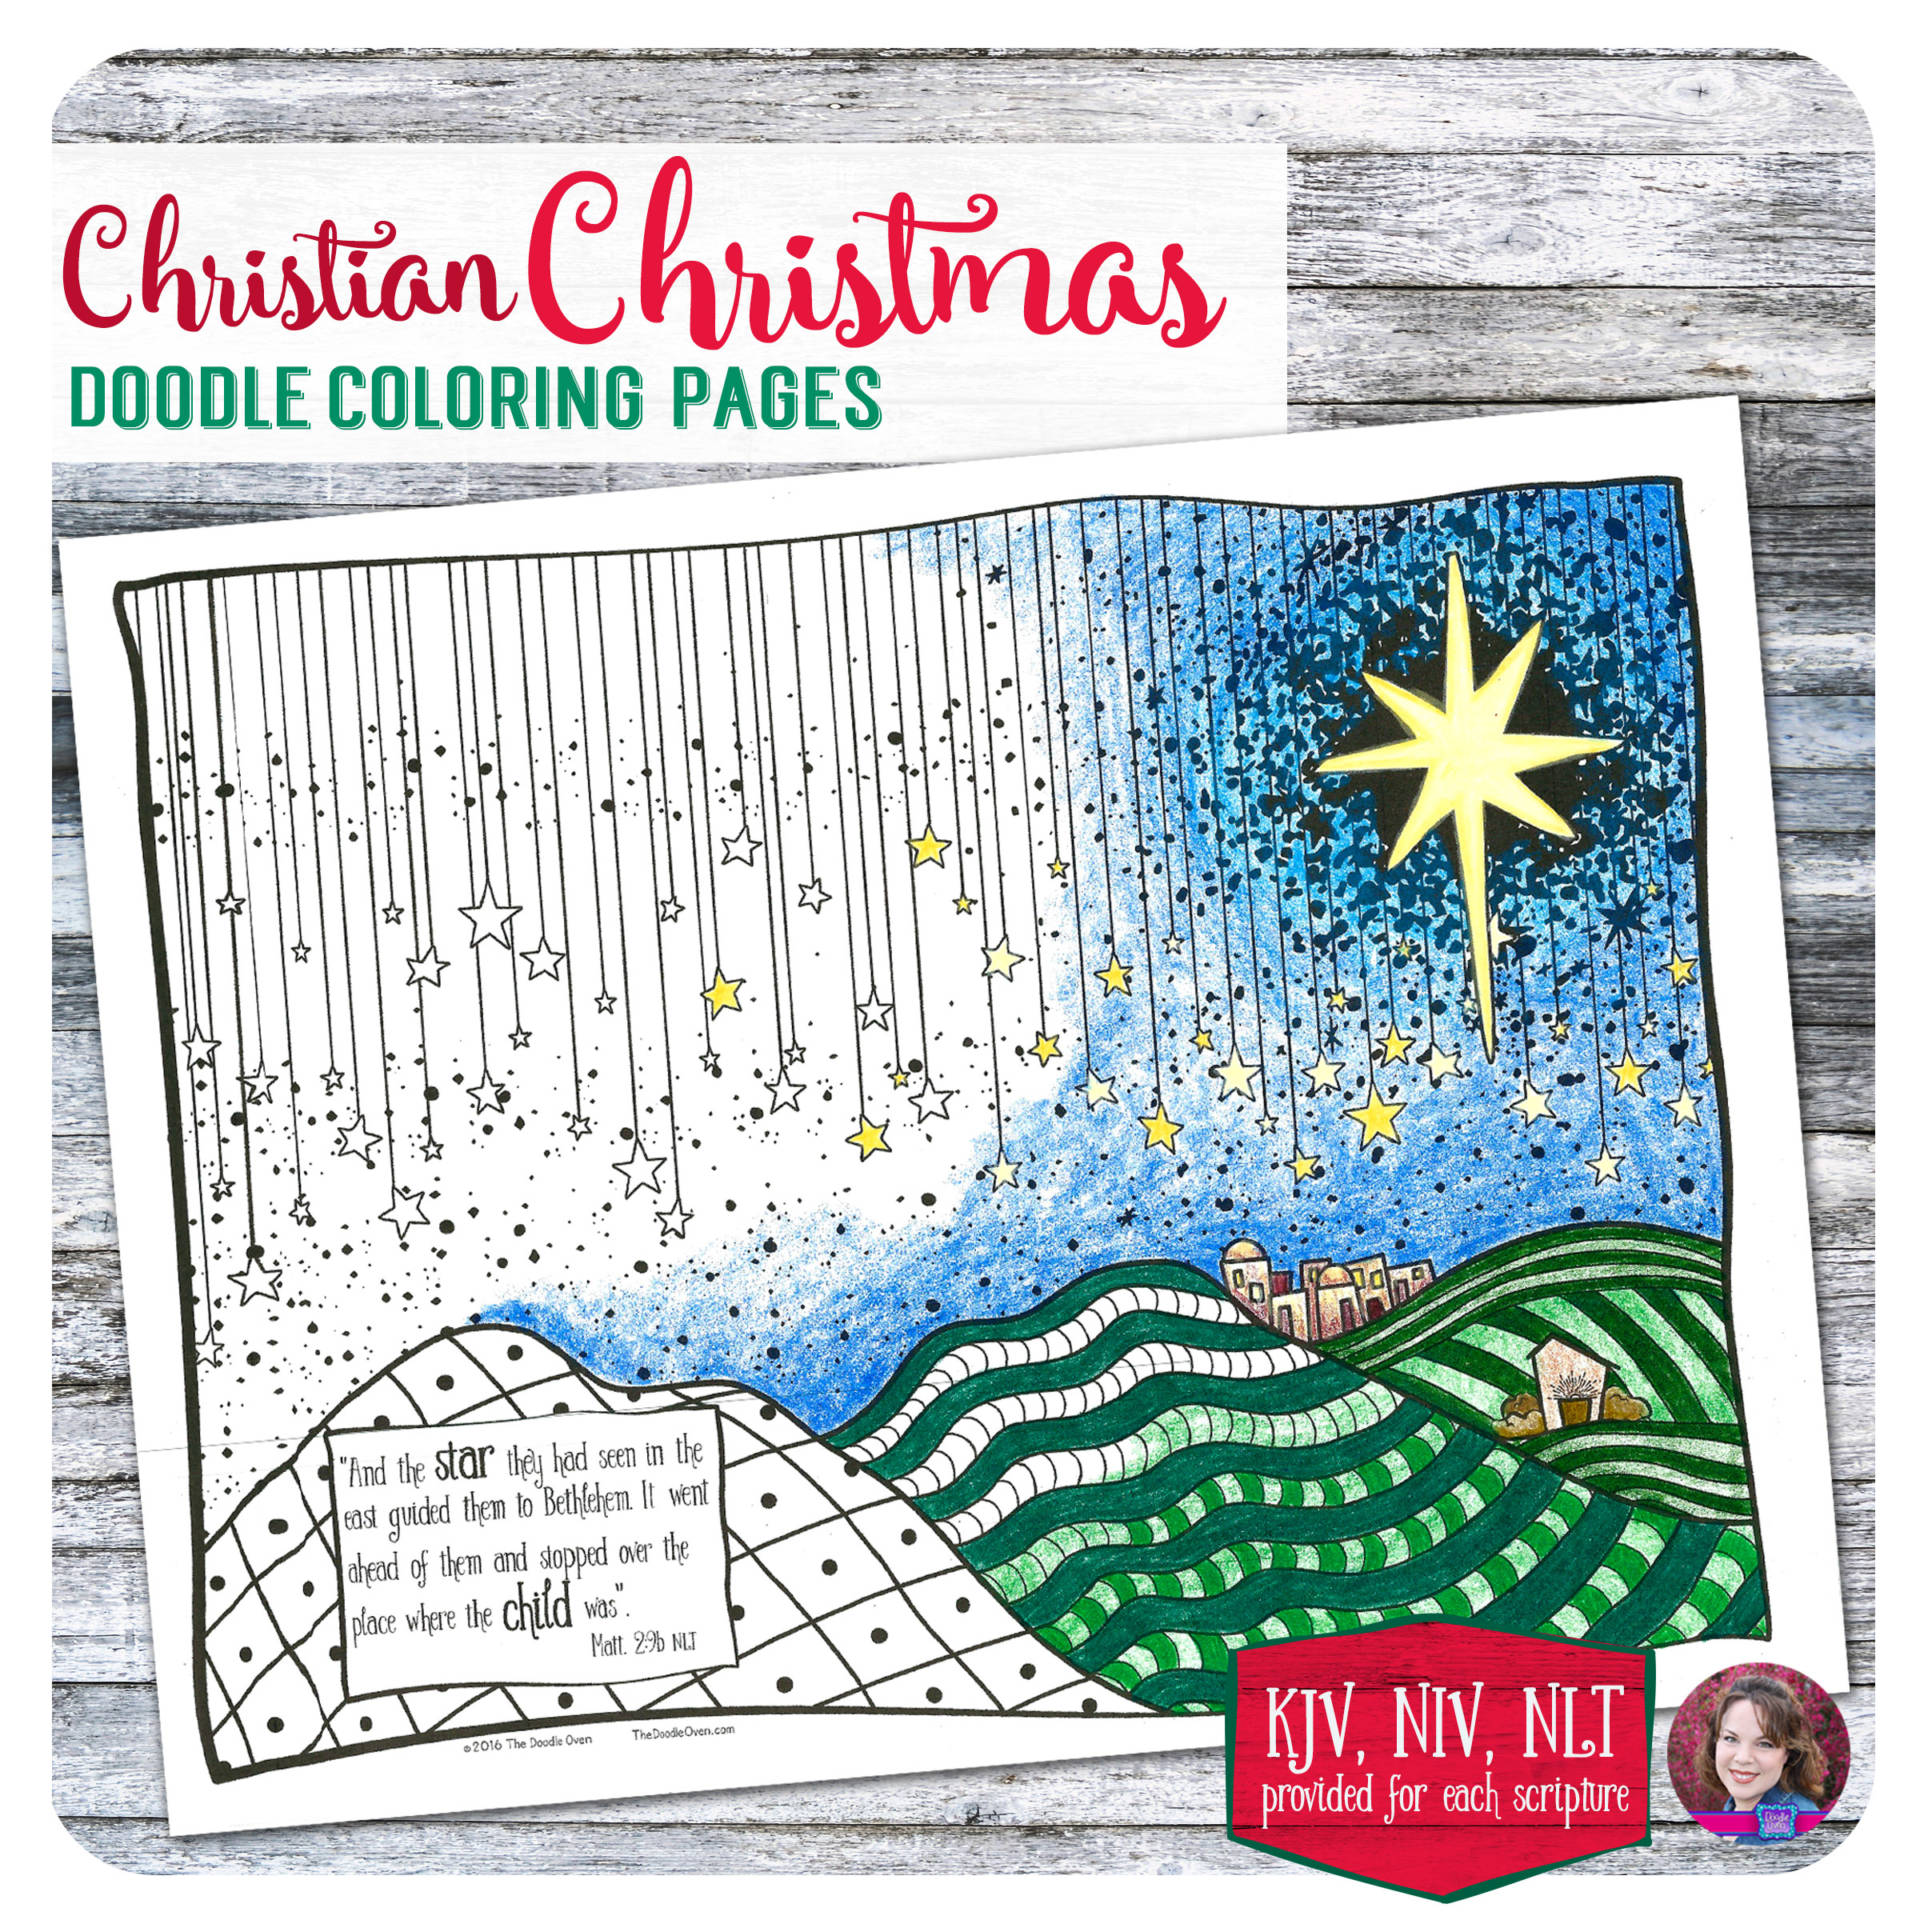 Religious Christmas Doodle Art Coloring Page Doodle Coloring